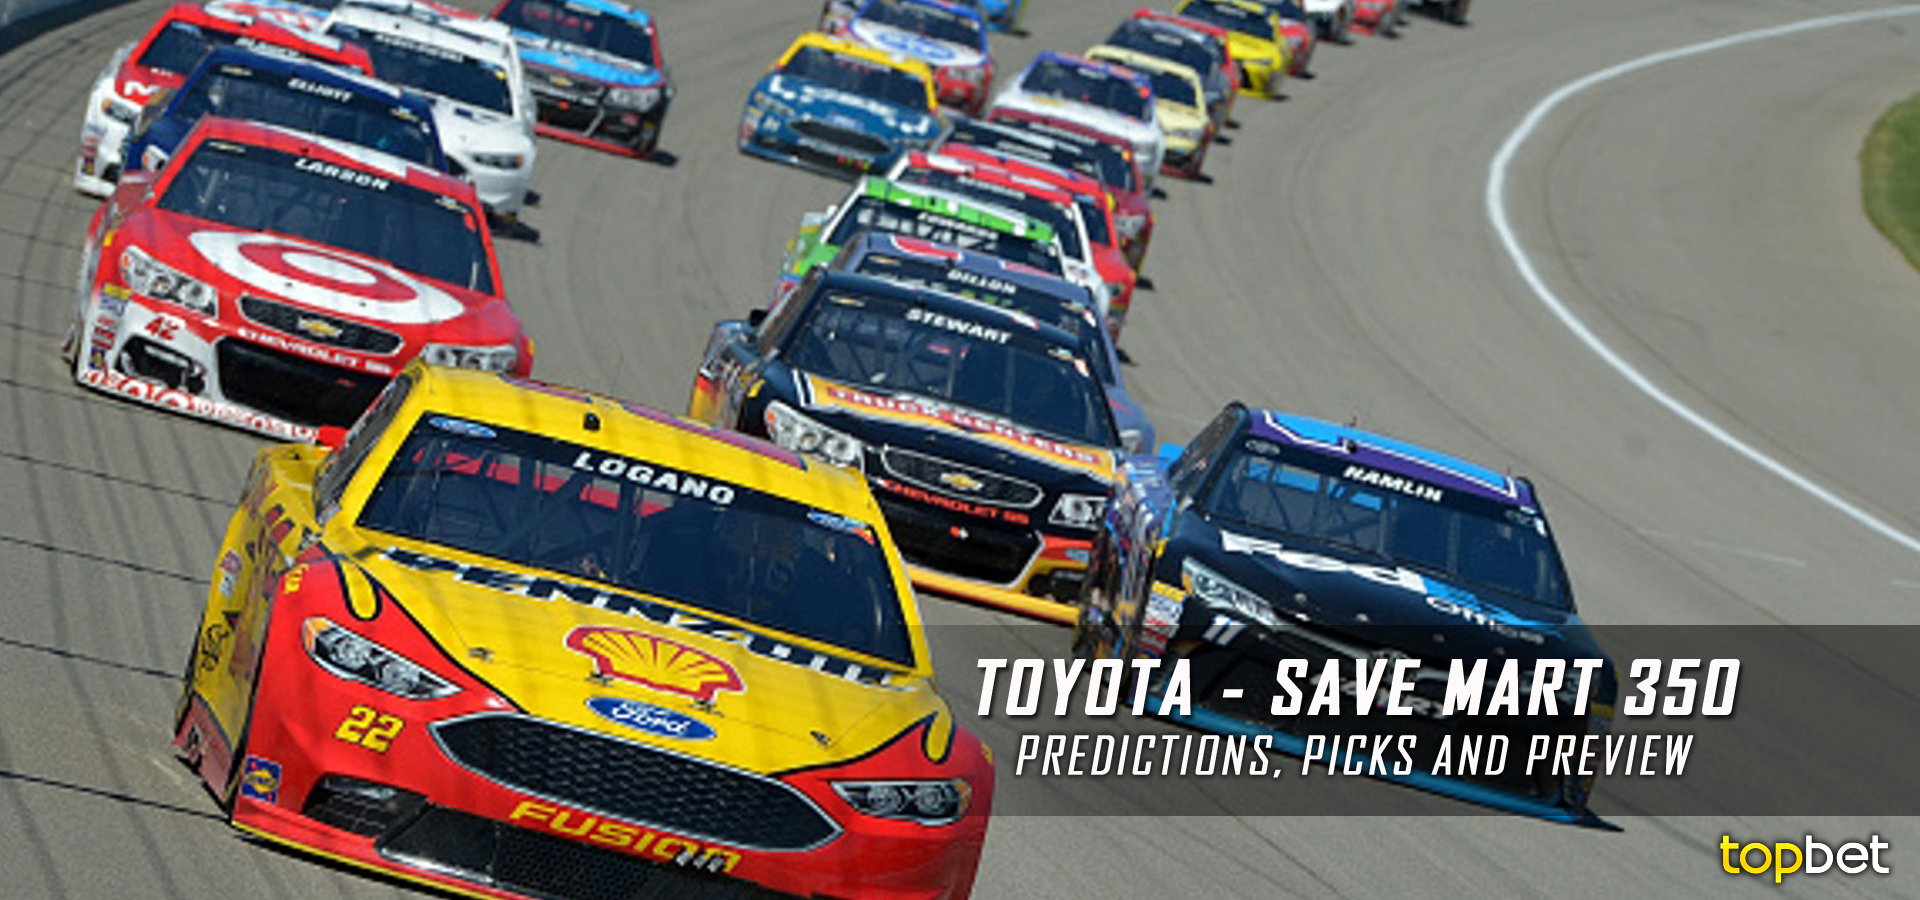 NASCAR Cup handicapping info for fantasy NASCAR players and NASCAR bettors.